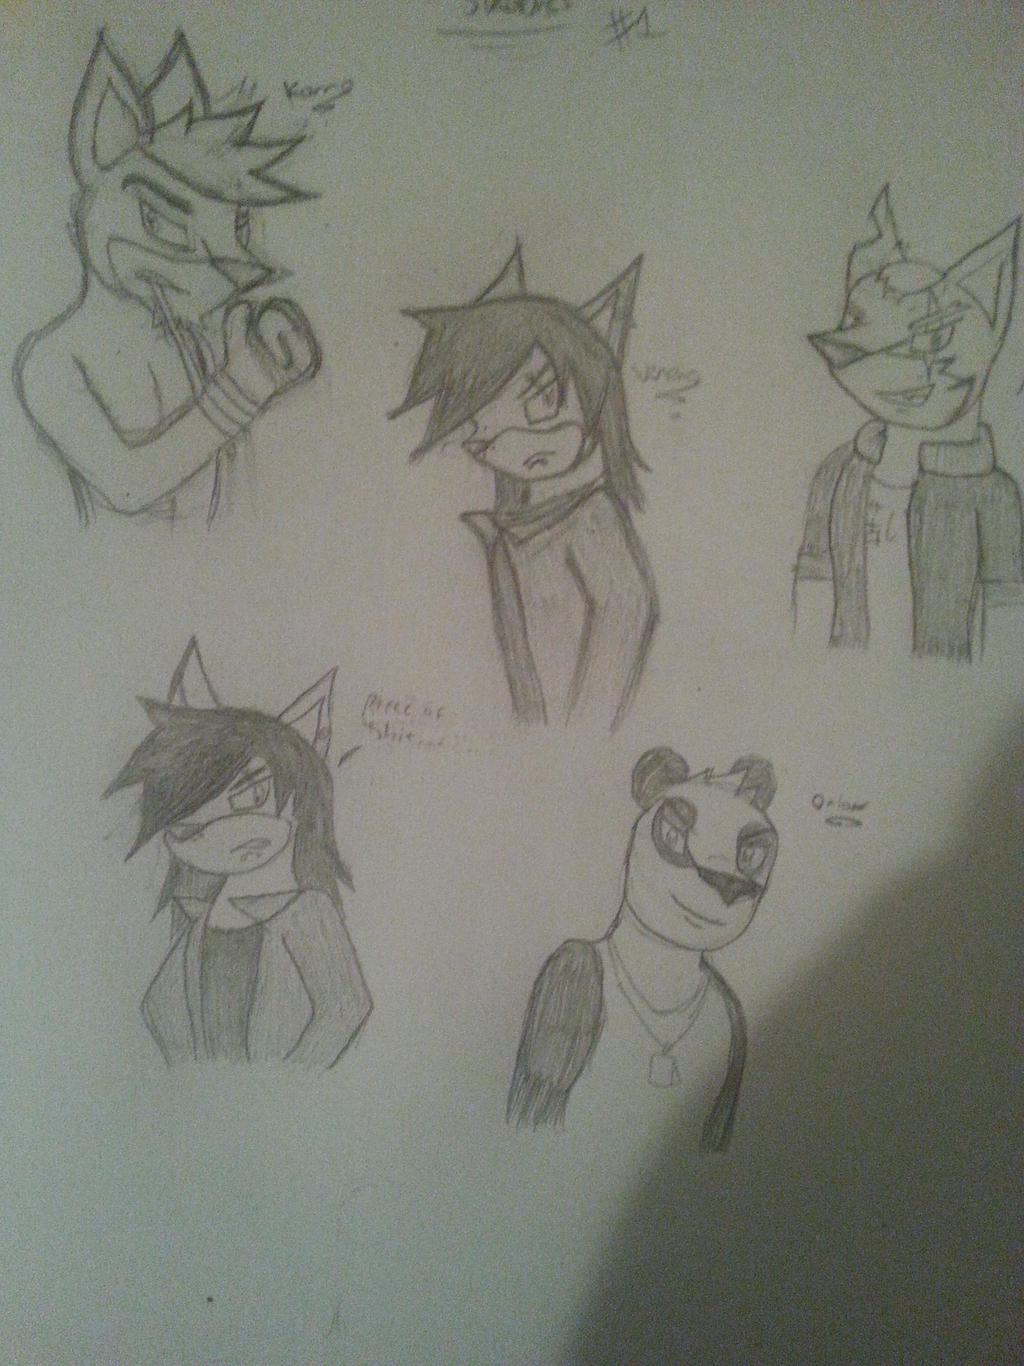 Character Sketches #1 by Silverfur15